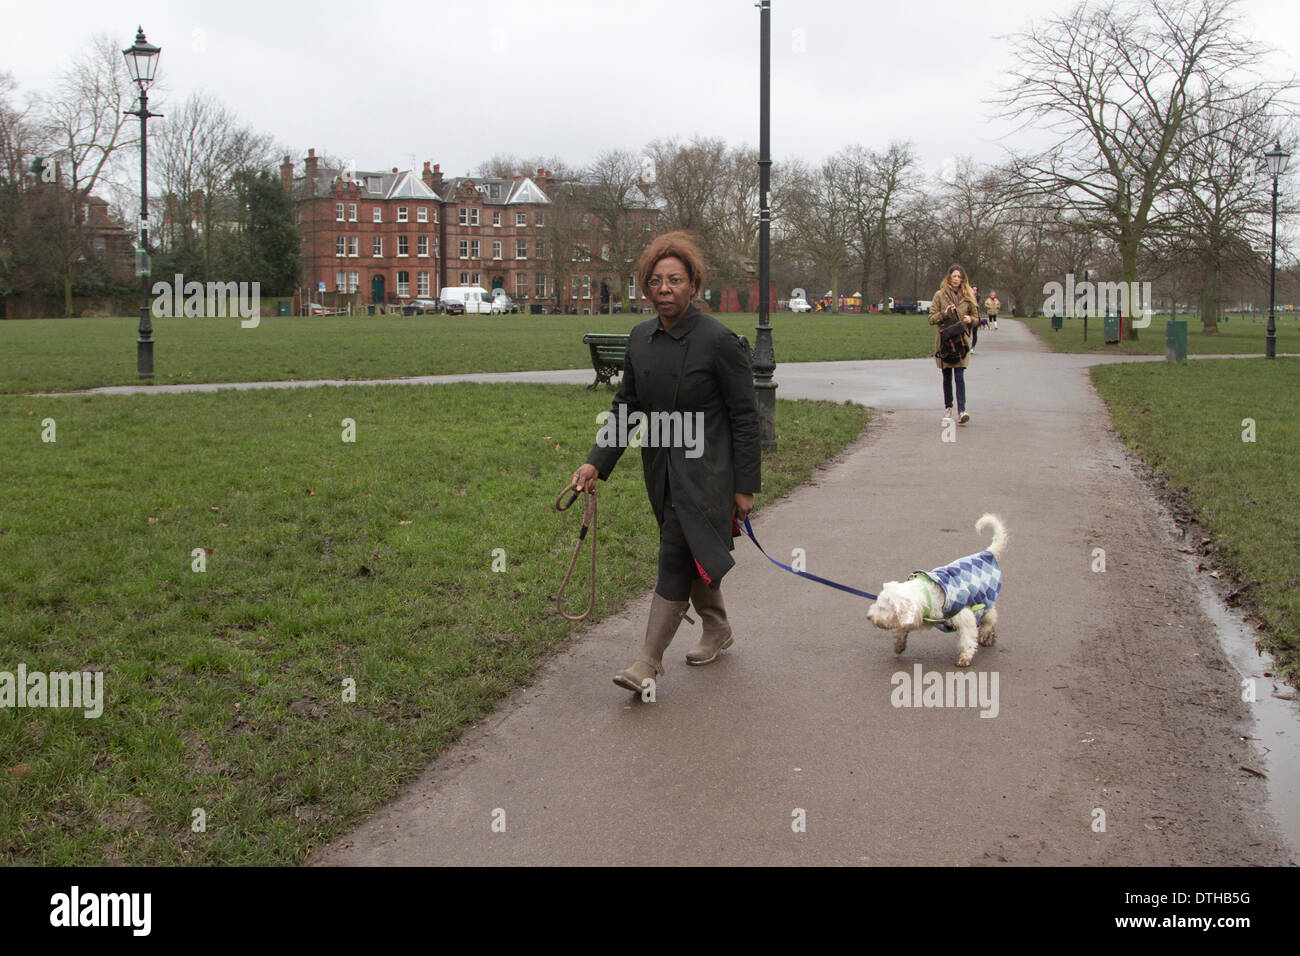 London UK. 18th February 2014. Barrister and part time judge Constance Briscoe who stood trial at Southwark Crown Court for lying to police about the speeding points over  the MP Chris Huhne Speeding  points is seen walking her dogs in Clapham Common. Constance Briscoe is due appear in court in April after the jury failed to reach a verdict Credit:  amer ghazzal/Alamy Live News - Stock Image